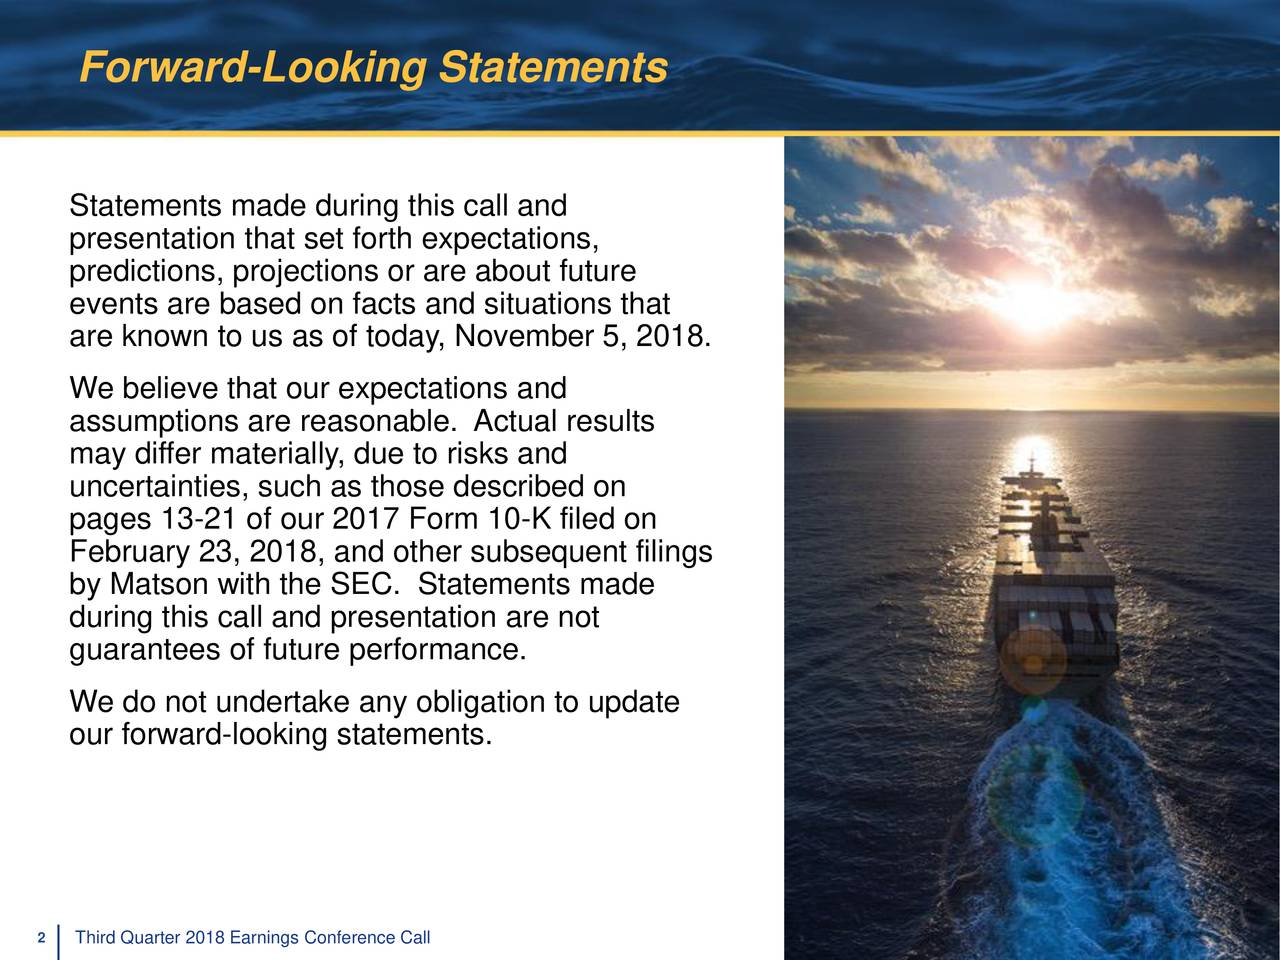 Statements made during this call and presentation that set forth expectations, predictions, projections or are about future events are based on facts and situations that are known to us as of today, November 5, 2018. We believe that our expectations and assumptions are reasonable. Actual results may differ materially, due to risks and uncertainties, such as those described on pages 13-21 of our 2017 Form 10-K filed on February 23, 2018, and other subsequent filings by Matson with the SEC. Statements made during this call and presentation are not guarantees of future performance. We do not undertake any obligation to update our forward-looking statements. 2 Third Quarter 2018 Earnings Conference Call